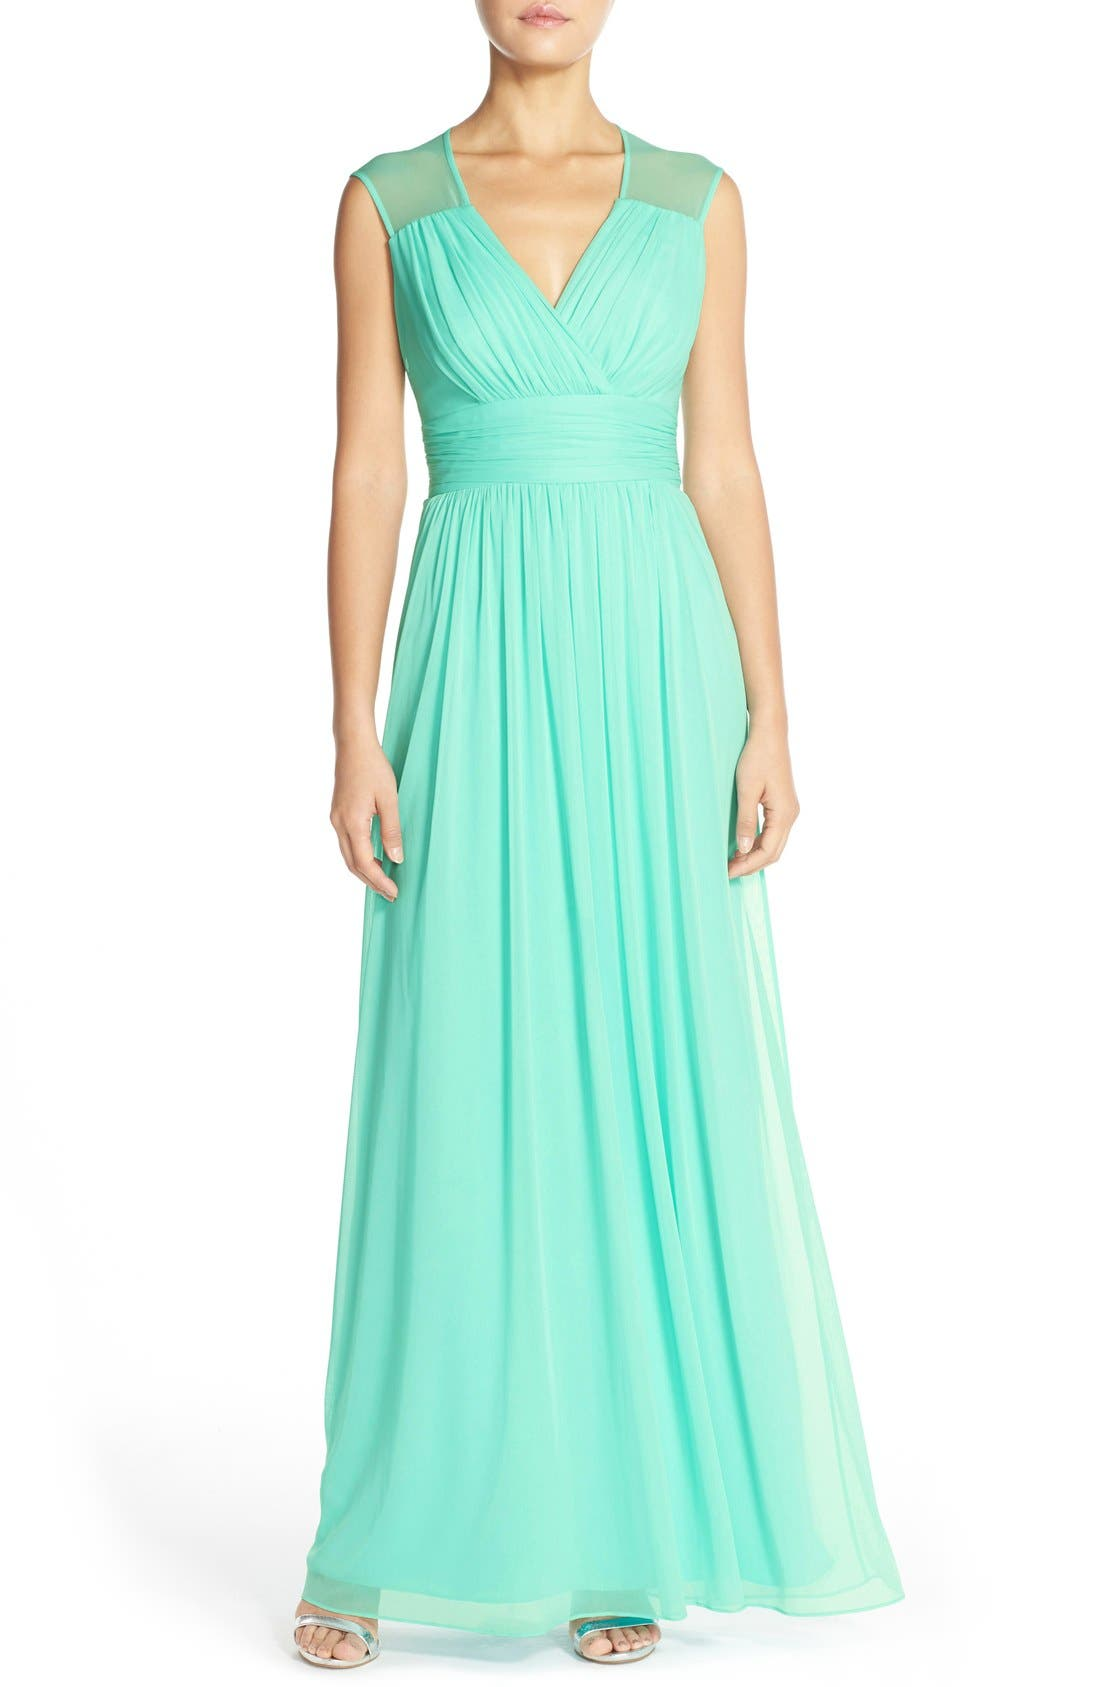 Alternate Image 1 Selected - Alfred Sung Shirred Chiffon Cap Sleeve Gown